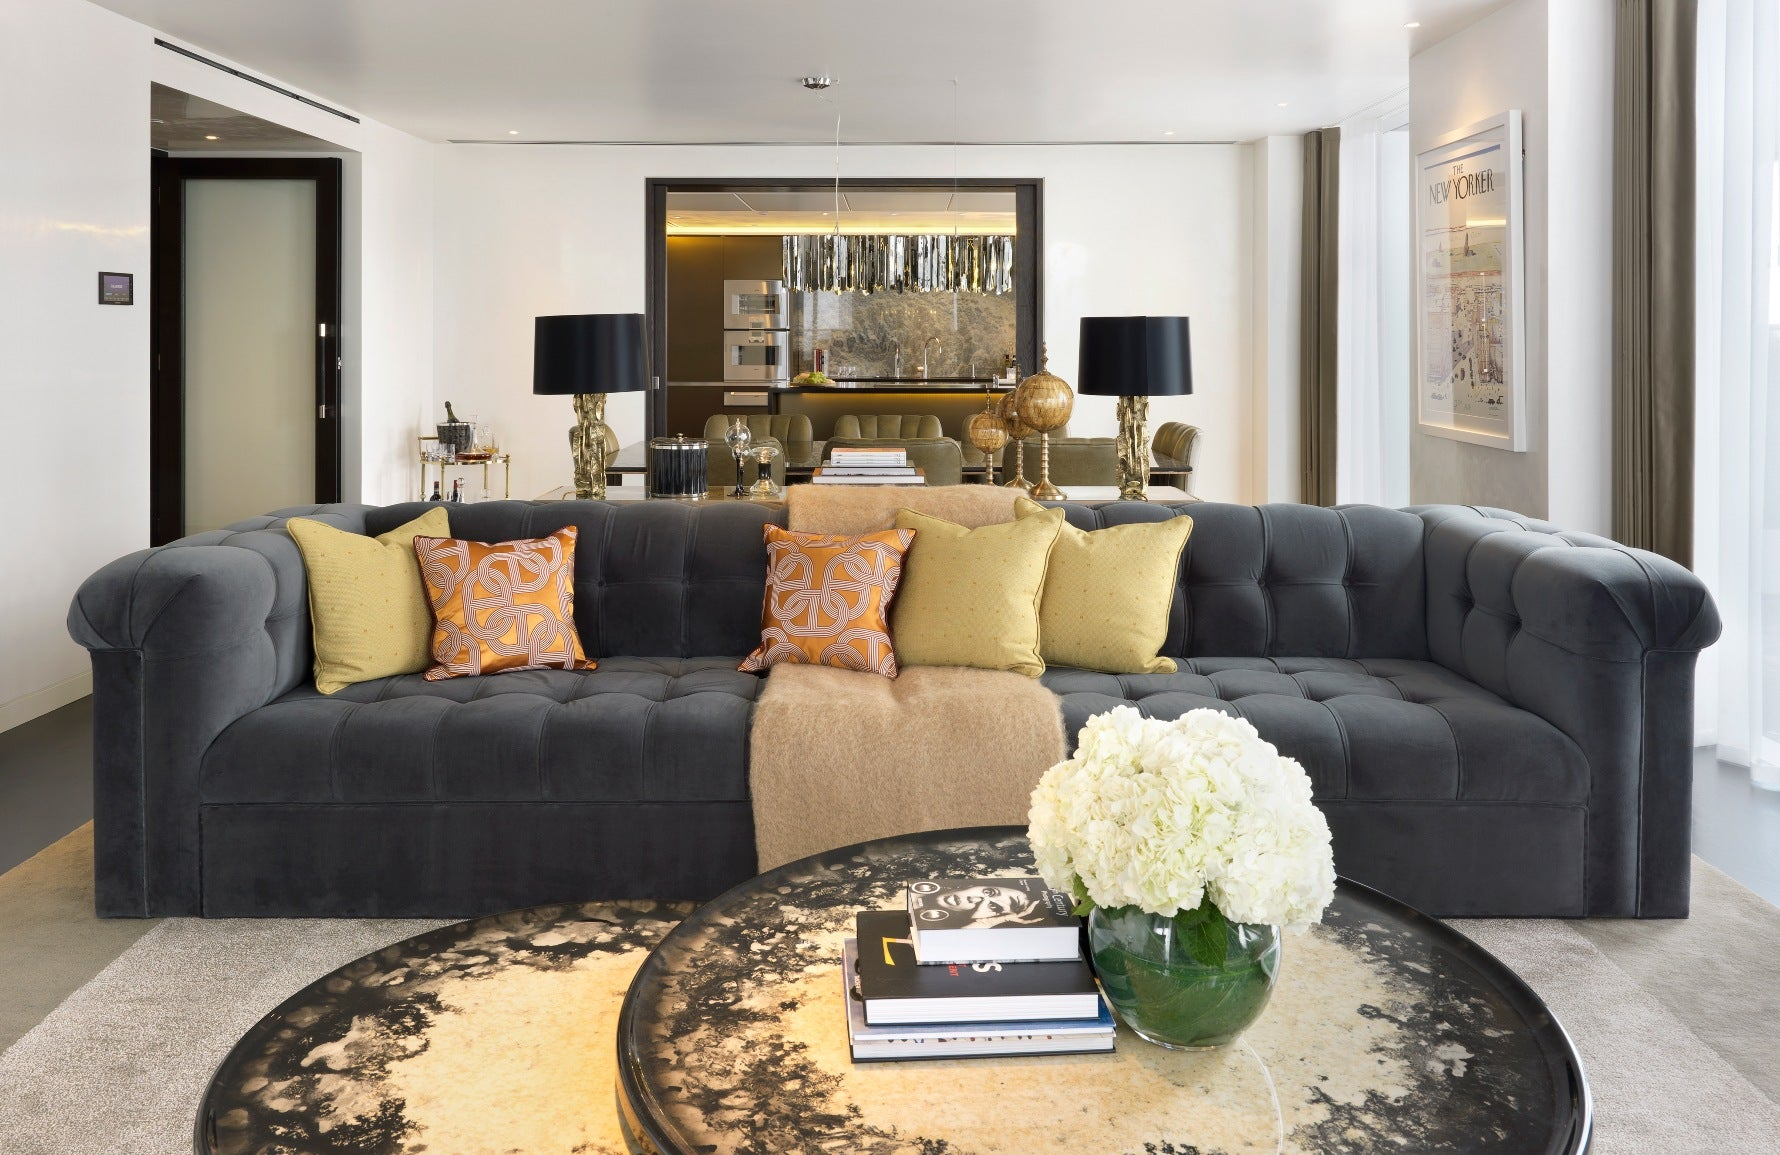 How To Style Your Sofa Cushions – Hybrid cushion arrangement – Shop Luxury Cushions at LuxDeco.com